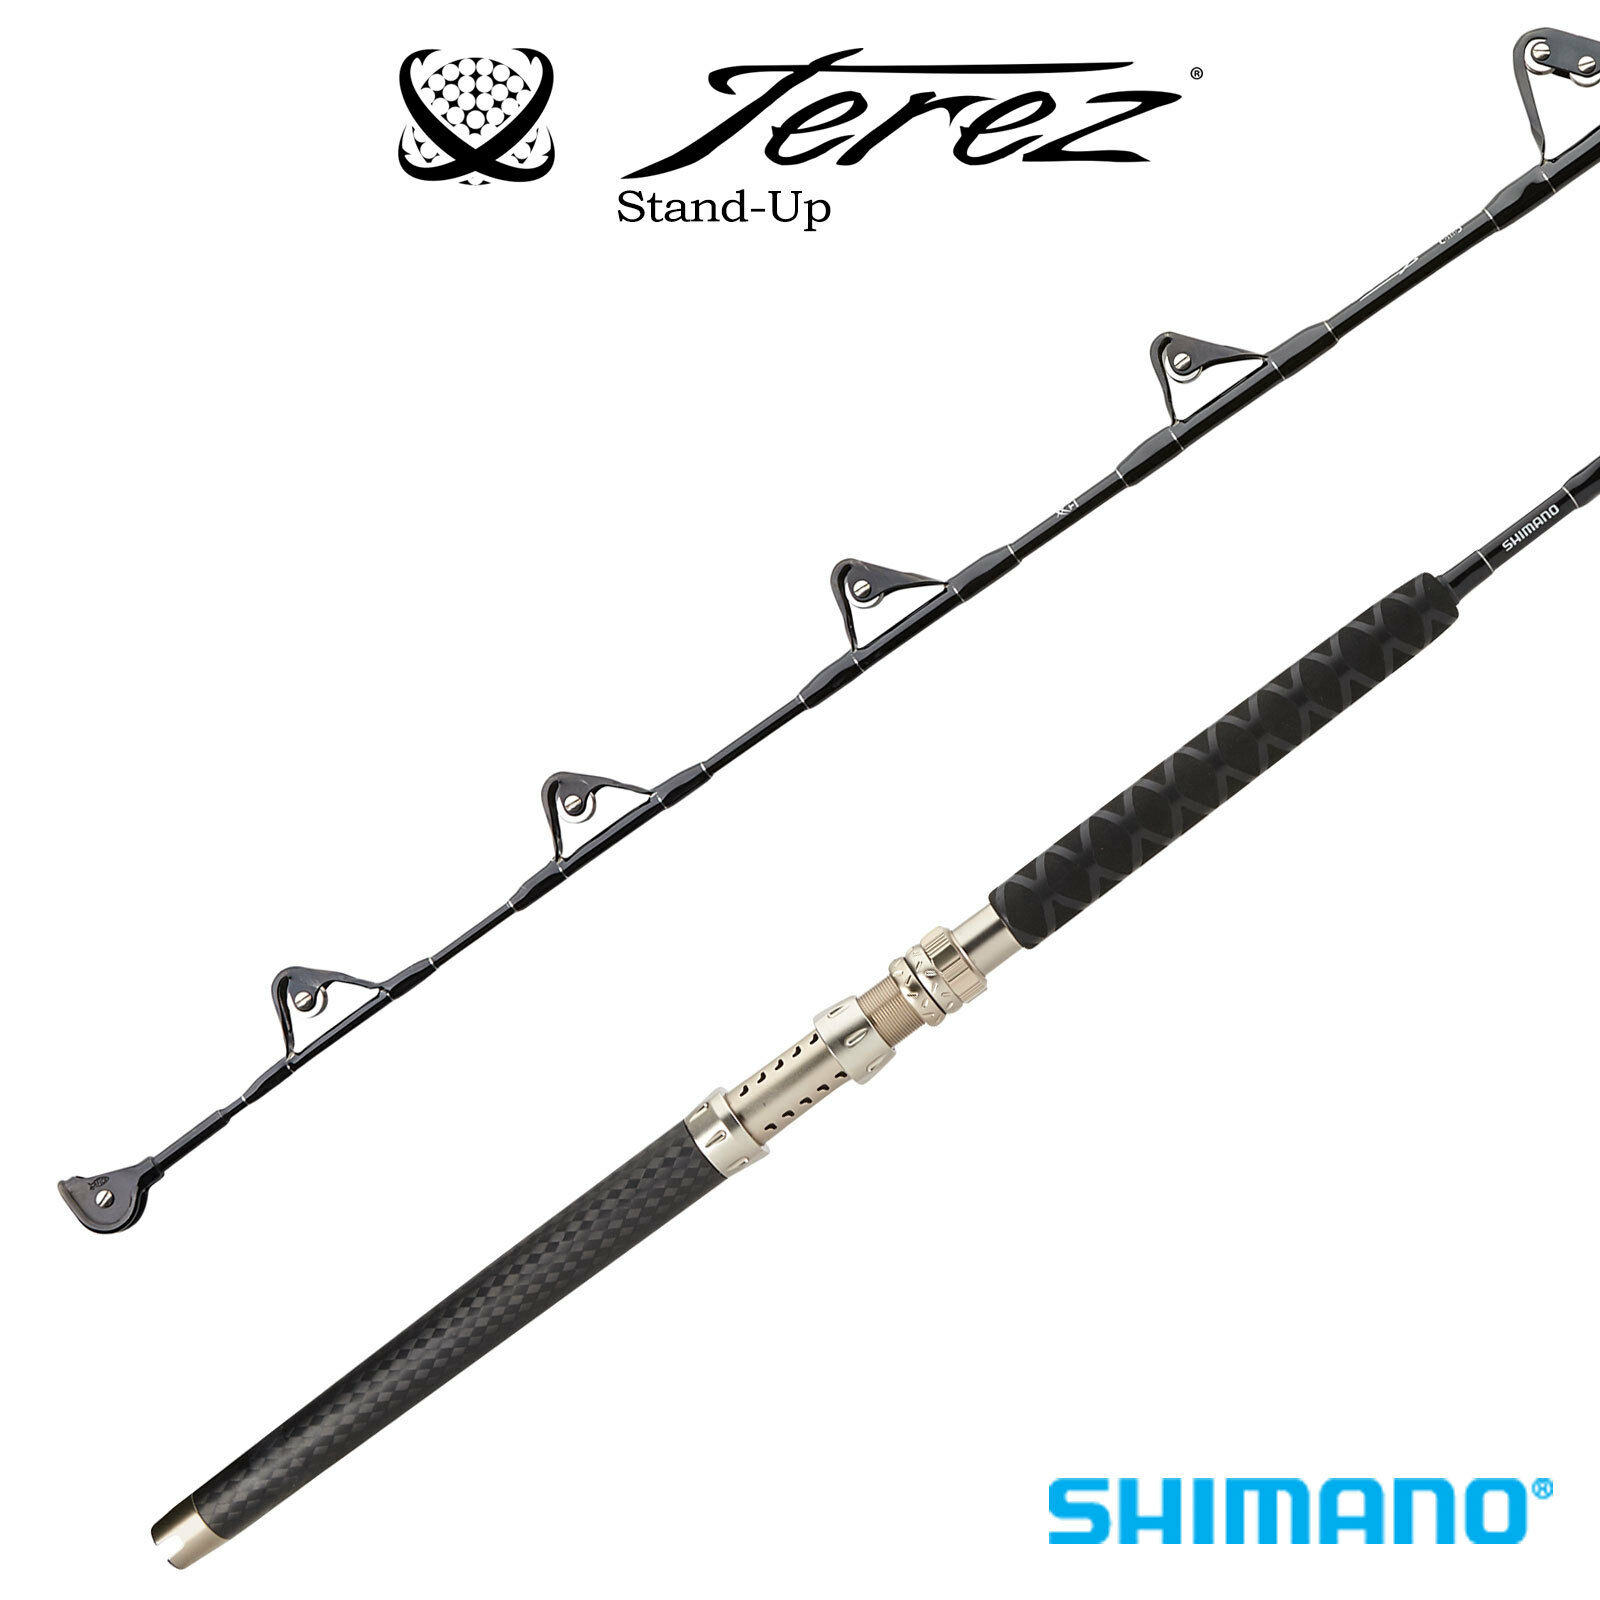 Shimano Terez Stand-Up Straight Butt Trolling Rod TZCSTH2SSBLK 5'6  Heavy 2pc